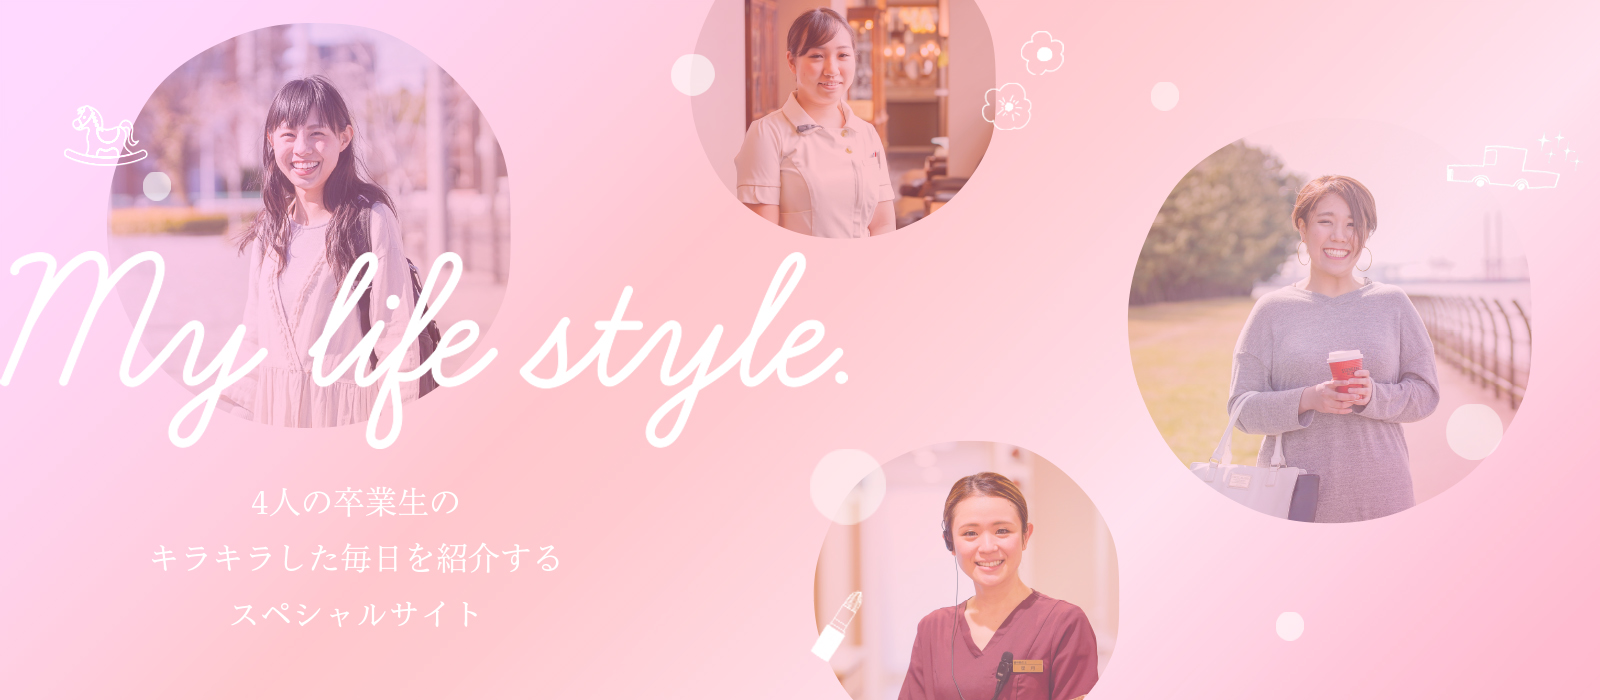 https://dental.ao-g.jp/wp-content/uploads/2020/05/d_og_banner.jpg